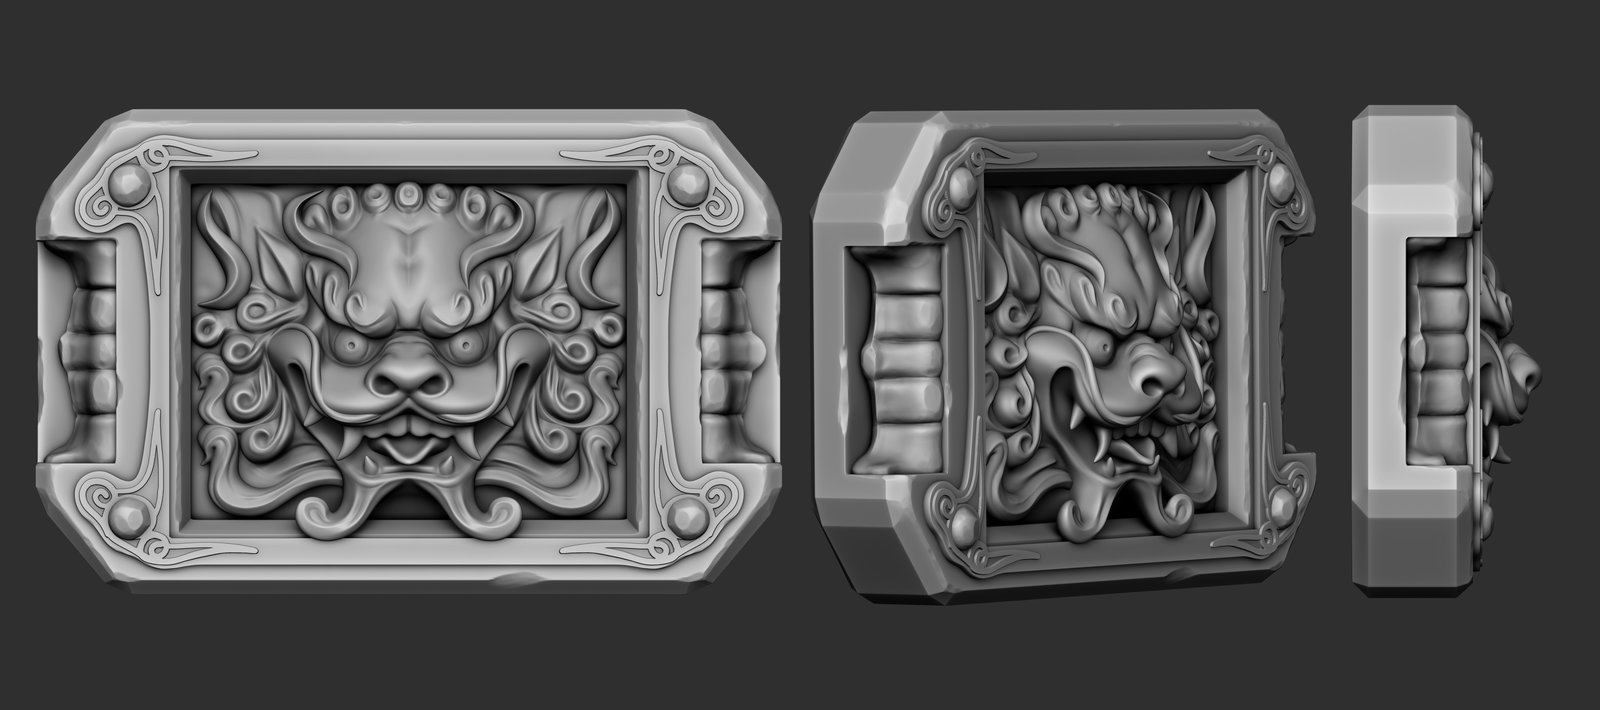 Foo dog head belt buckle, since they are a symbol of good fortune, and they look friggin cool.